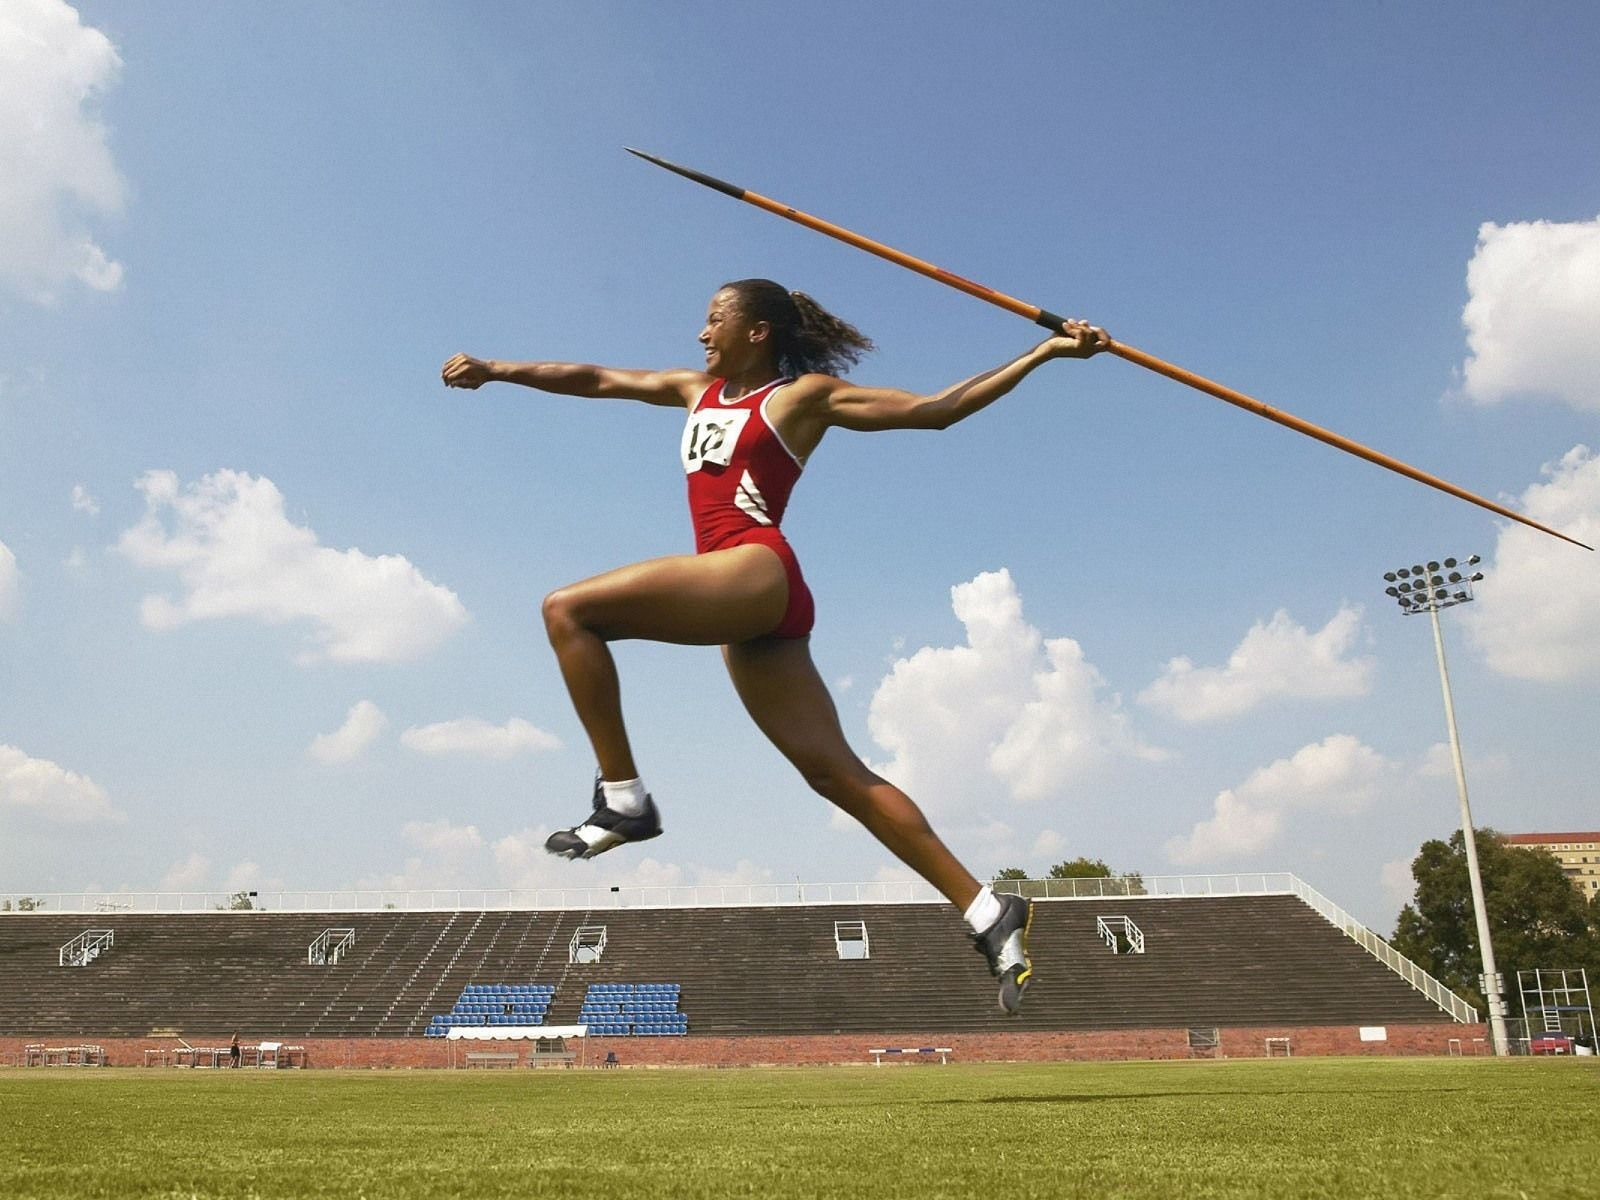 girls javelin women javelin throw 1600x1200 wallpapers 1600x1200 wallpapers